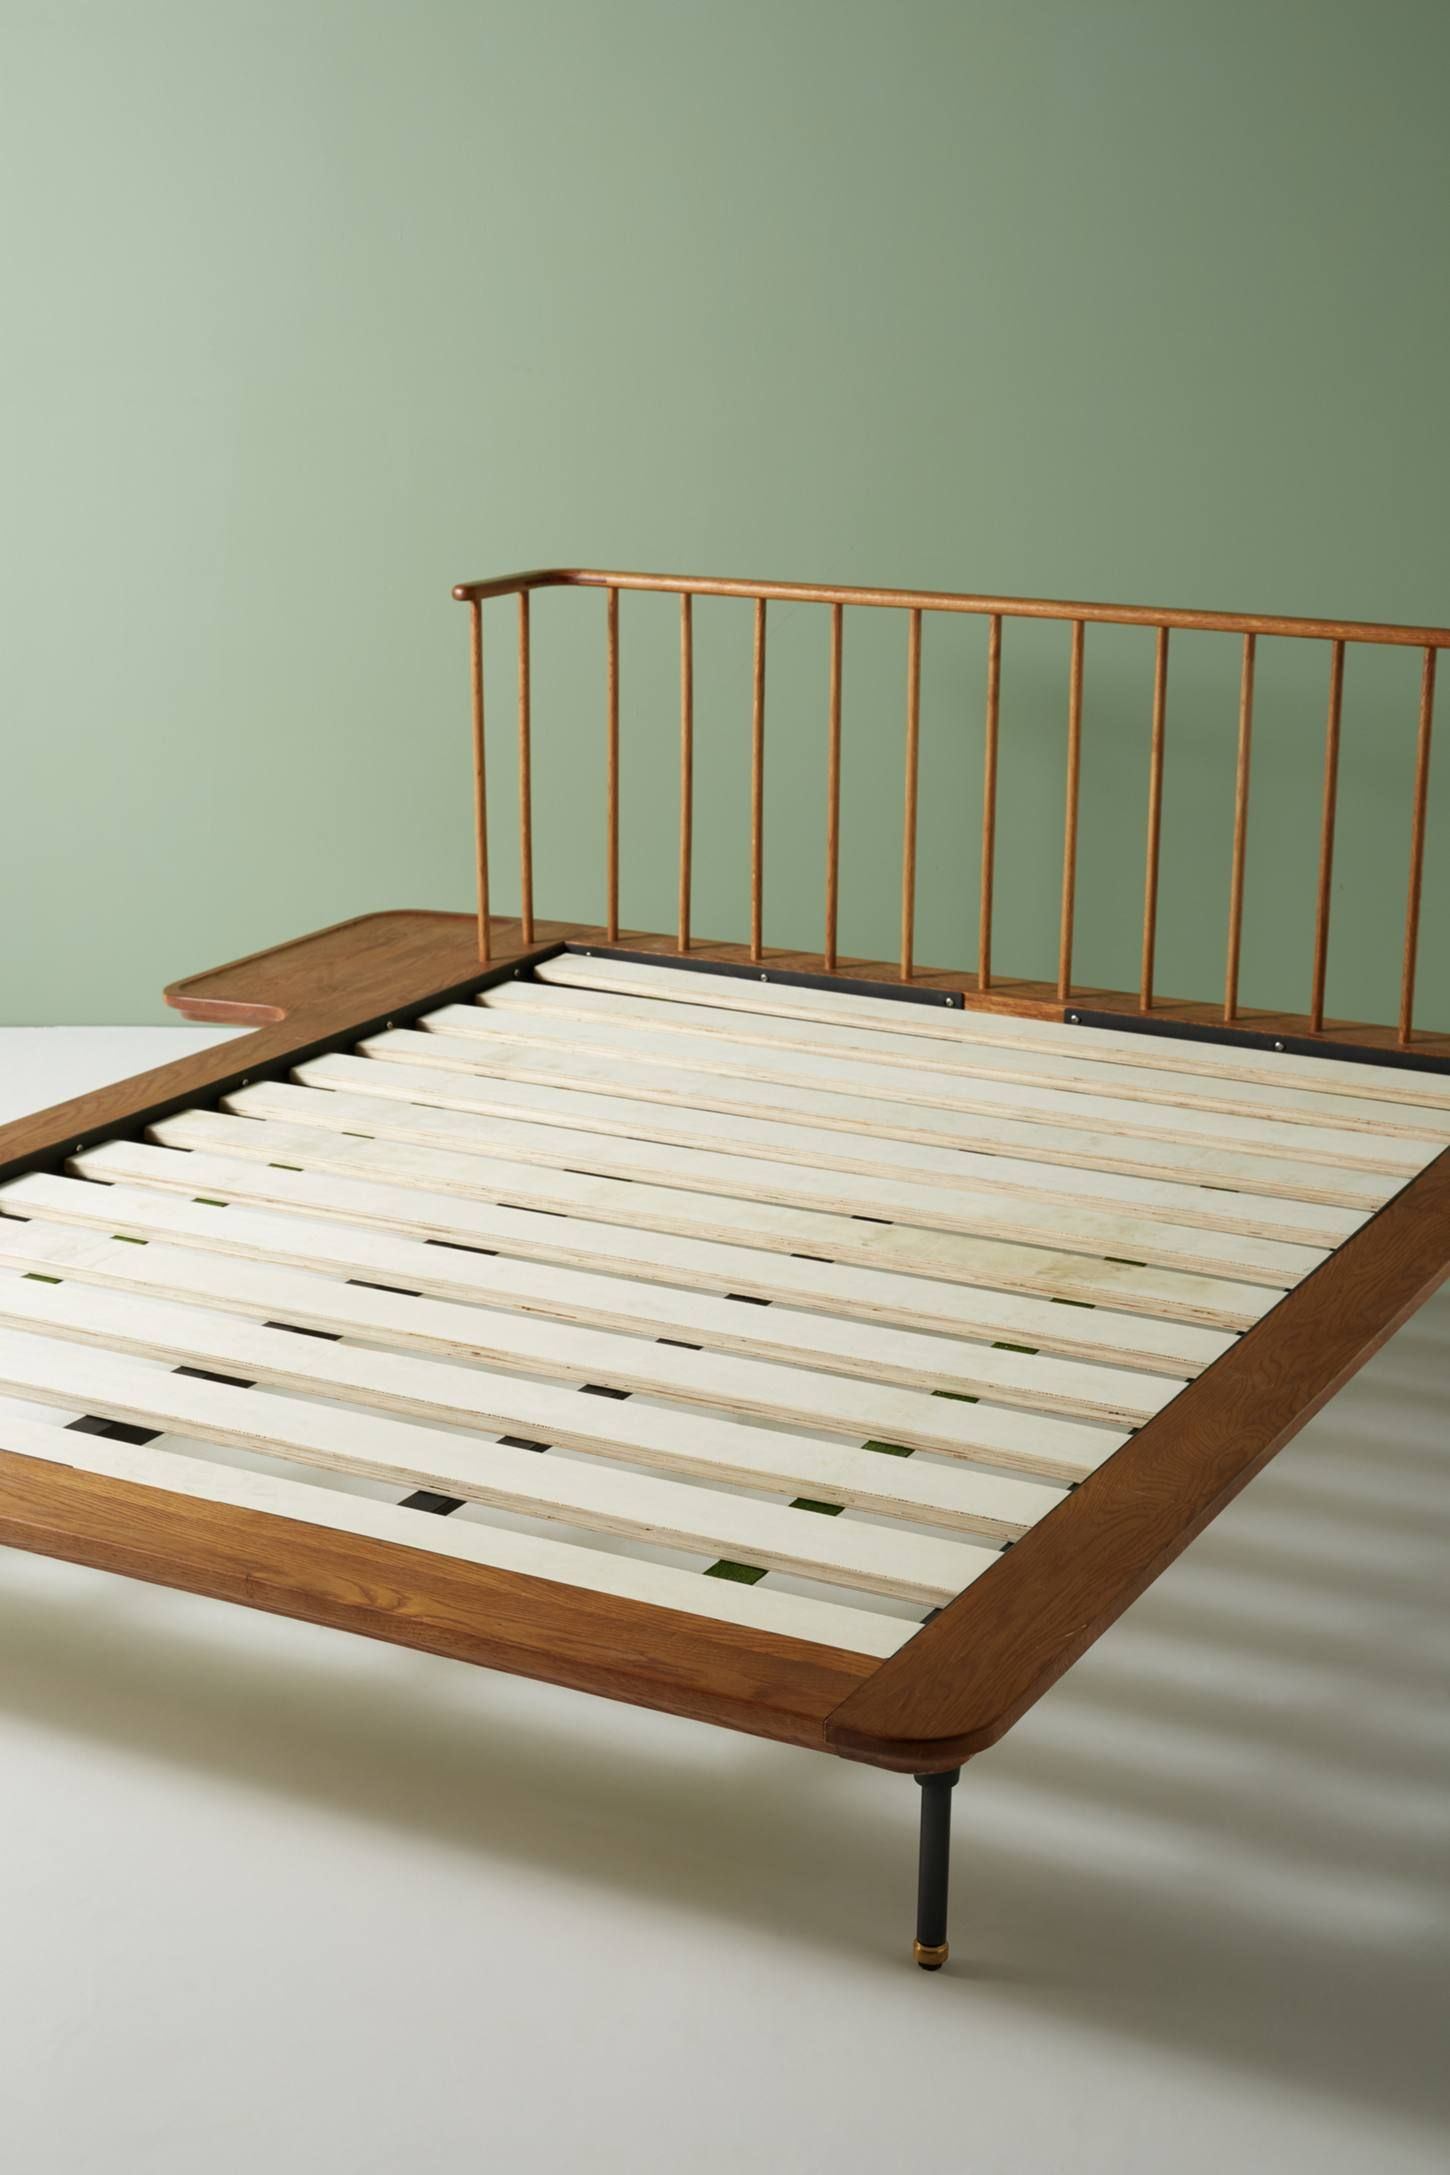 44058cc972a Shop the Kalmar Bed and more Anthropologie at Anthropologie today. Read  customer reviews